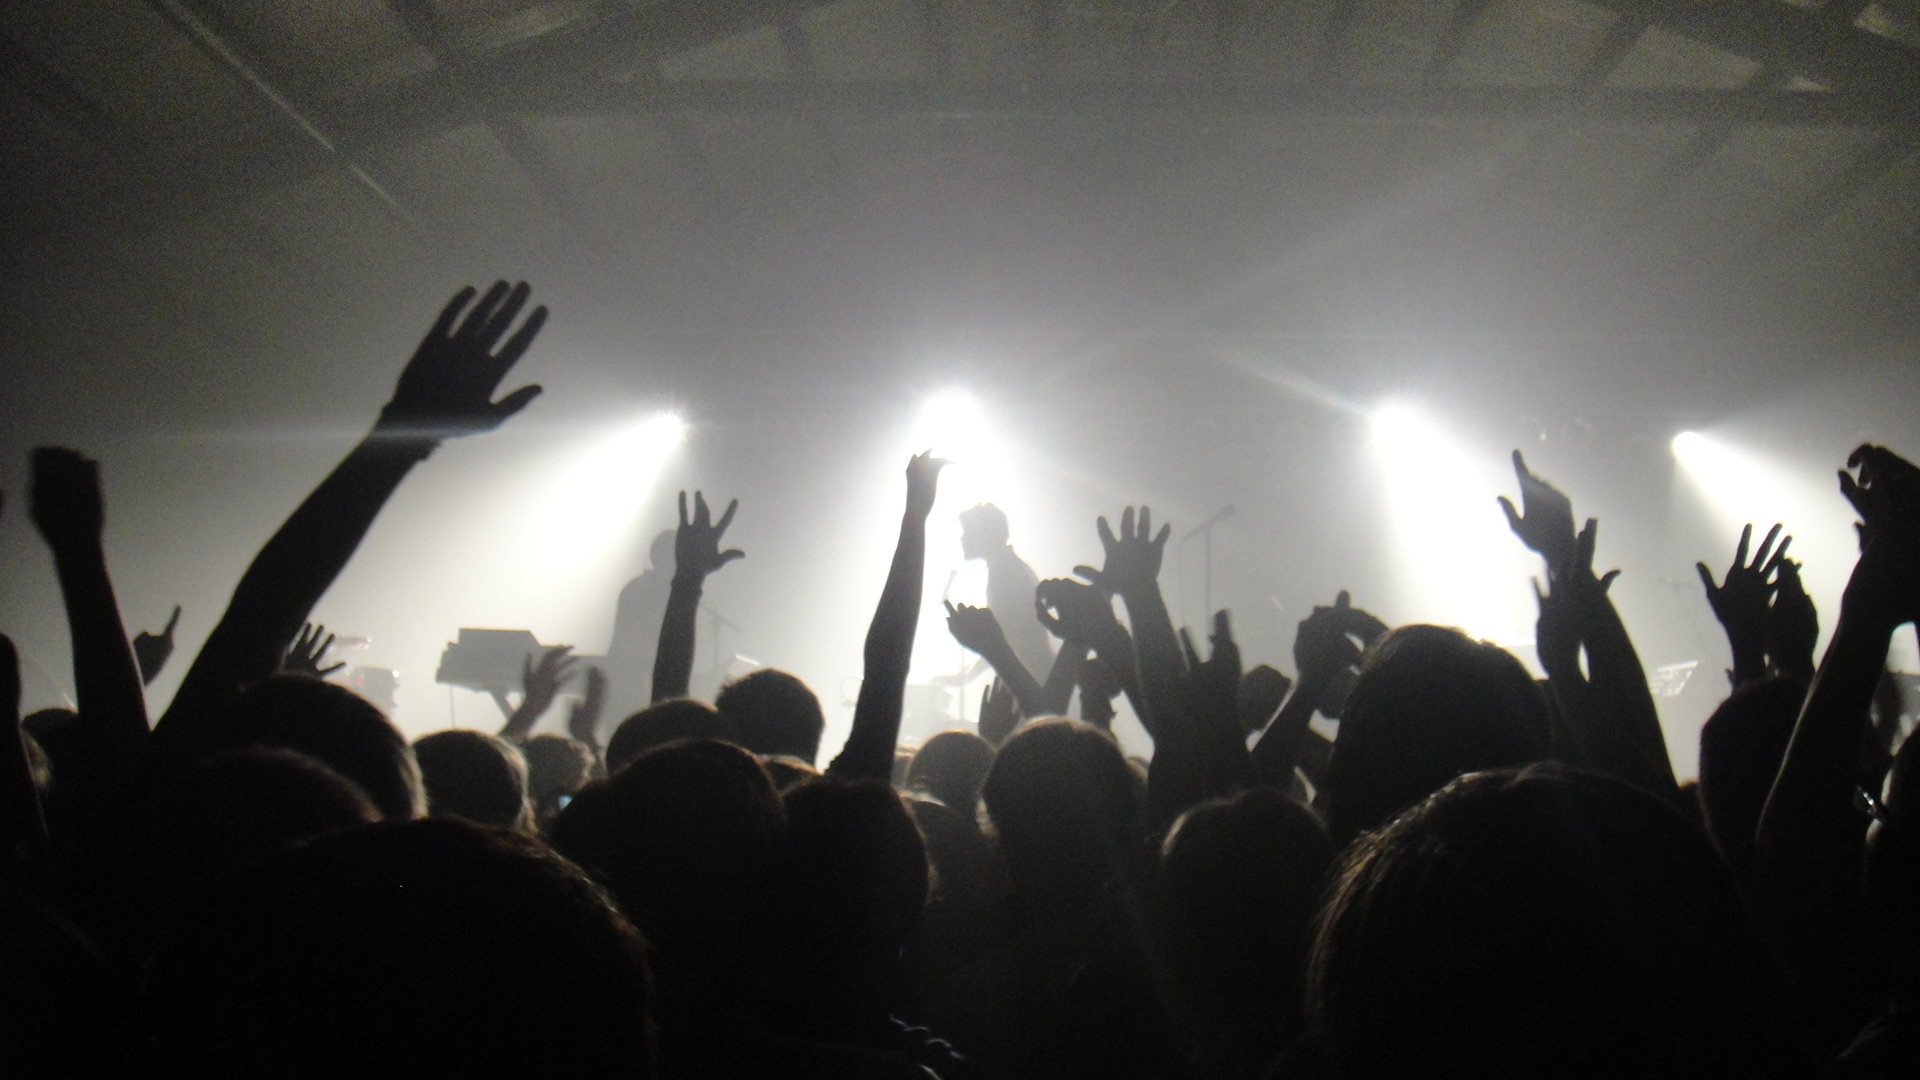 download live music wallpaper gallery